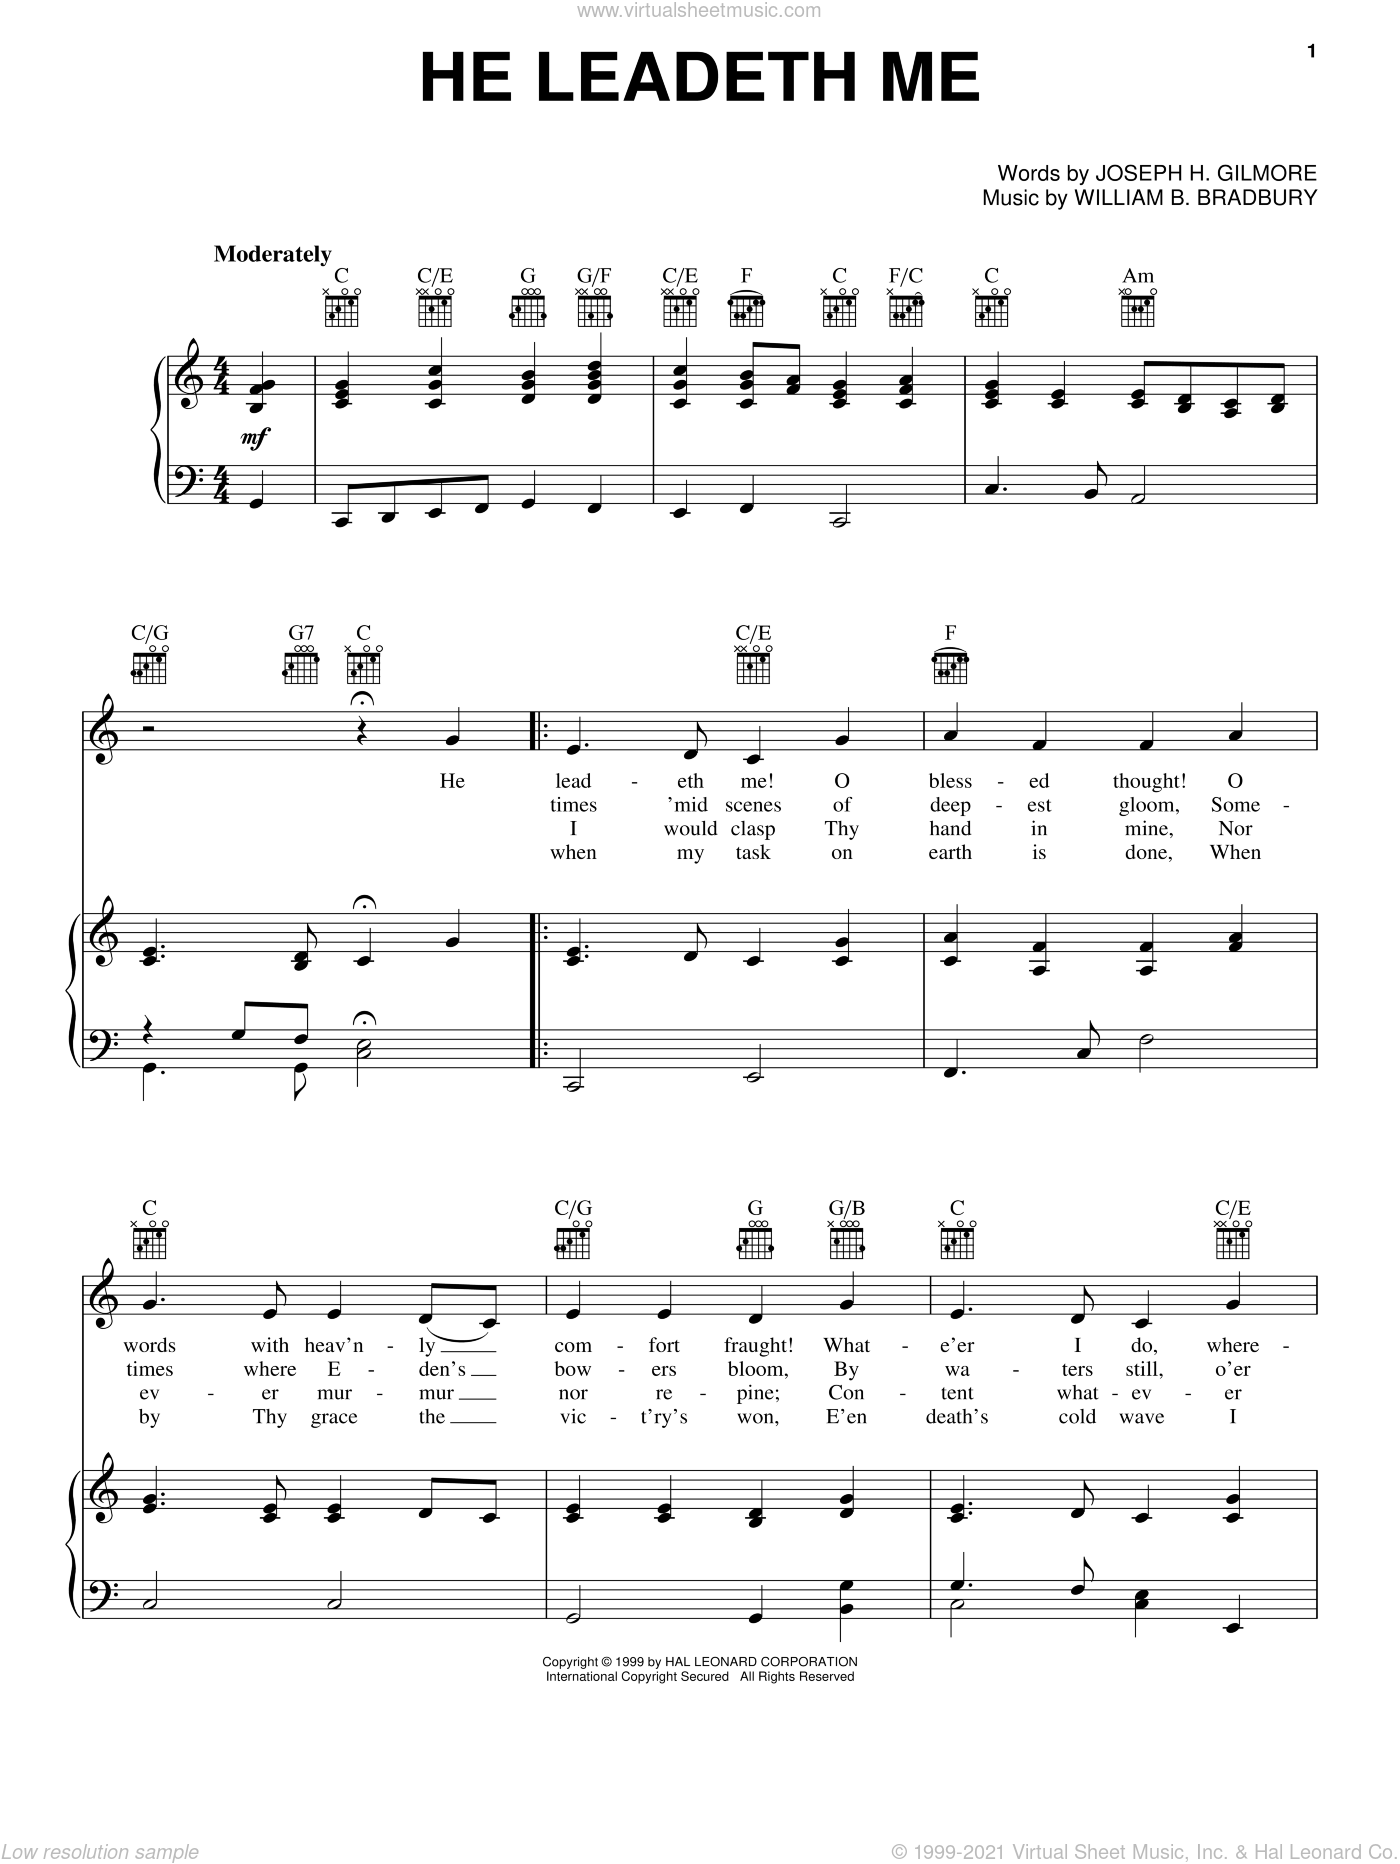 He Leadeth Me sheet music for voice, piano or guitar by William B. Bradbury and Joseph H. Gilmore, intermediate skill level